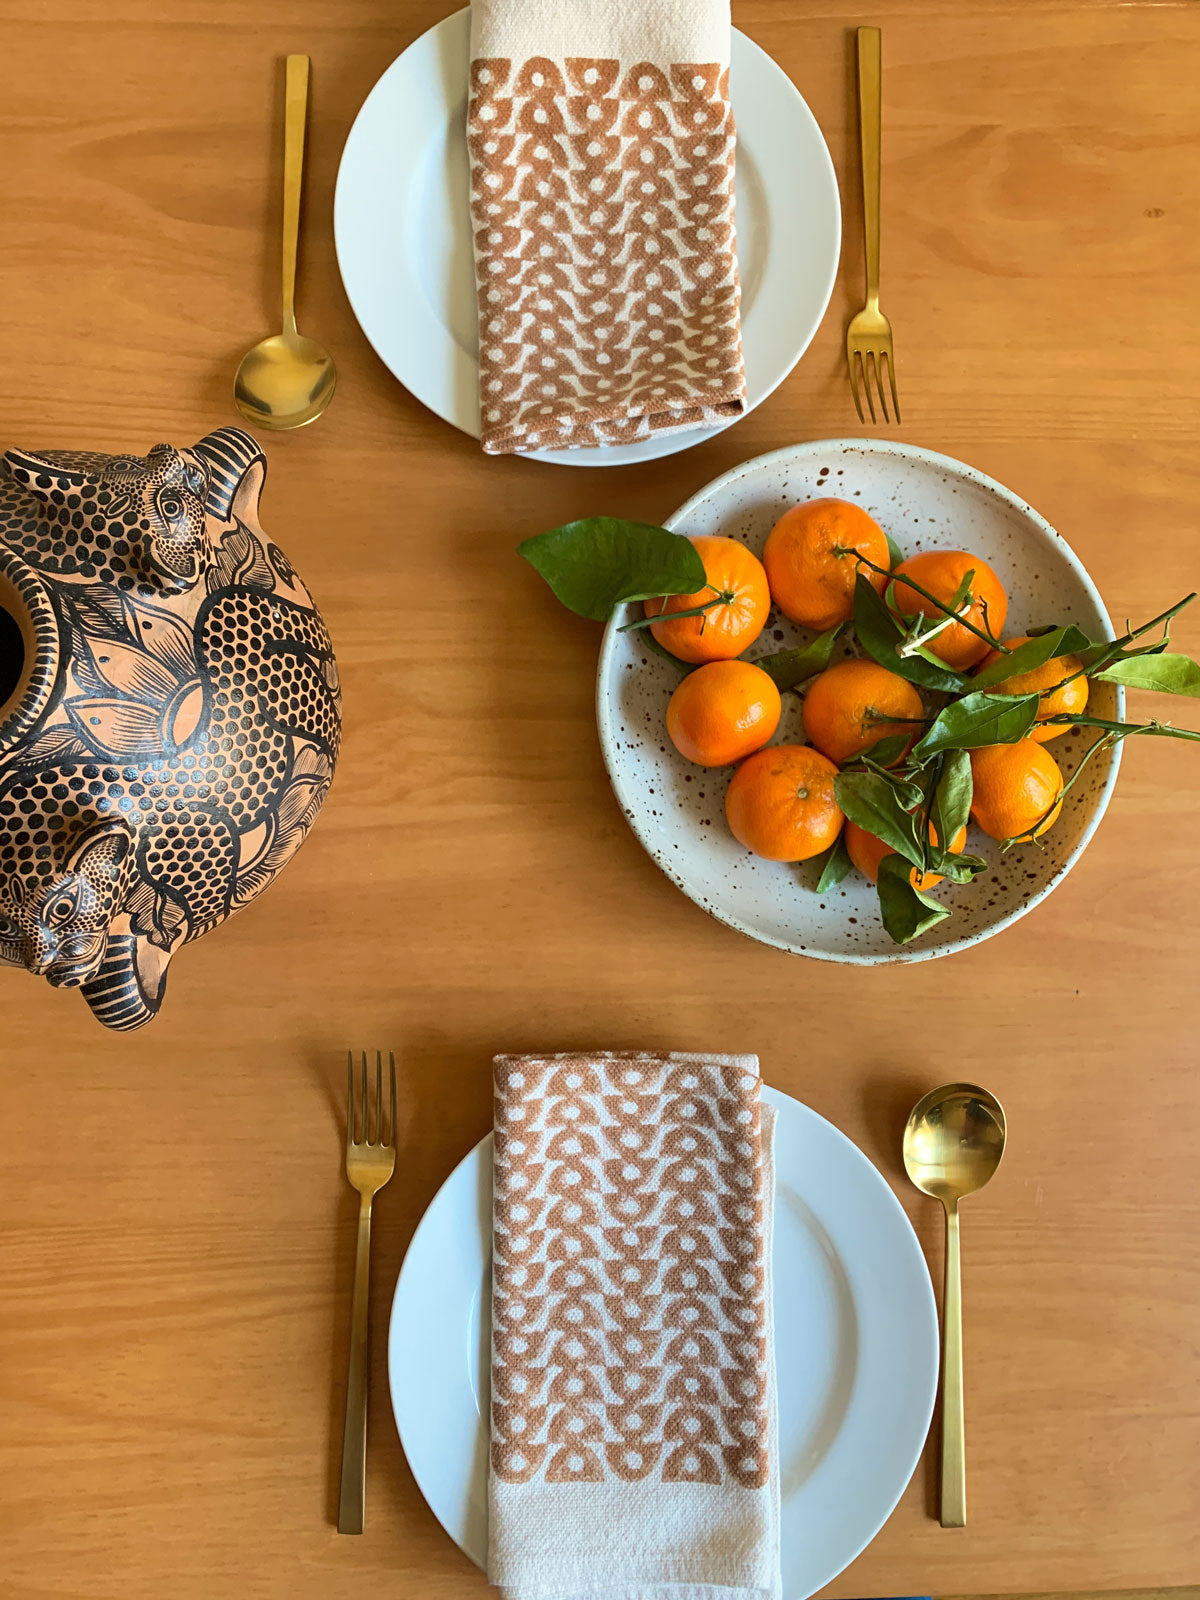 SUNDAY/MONDAY's hand block printed brown and natural white cloth napkins featuring a geometric circle pattern.